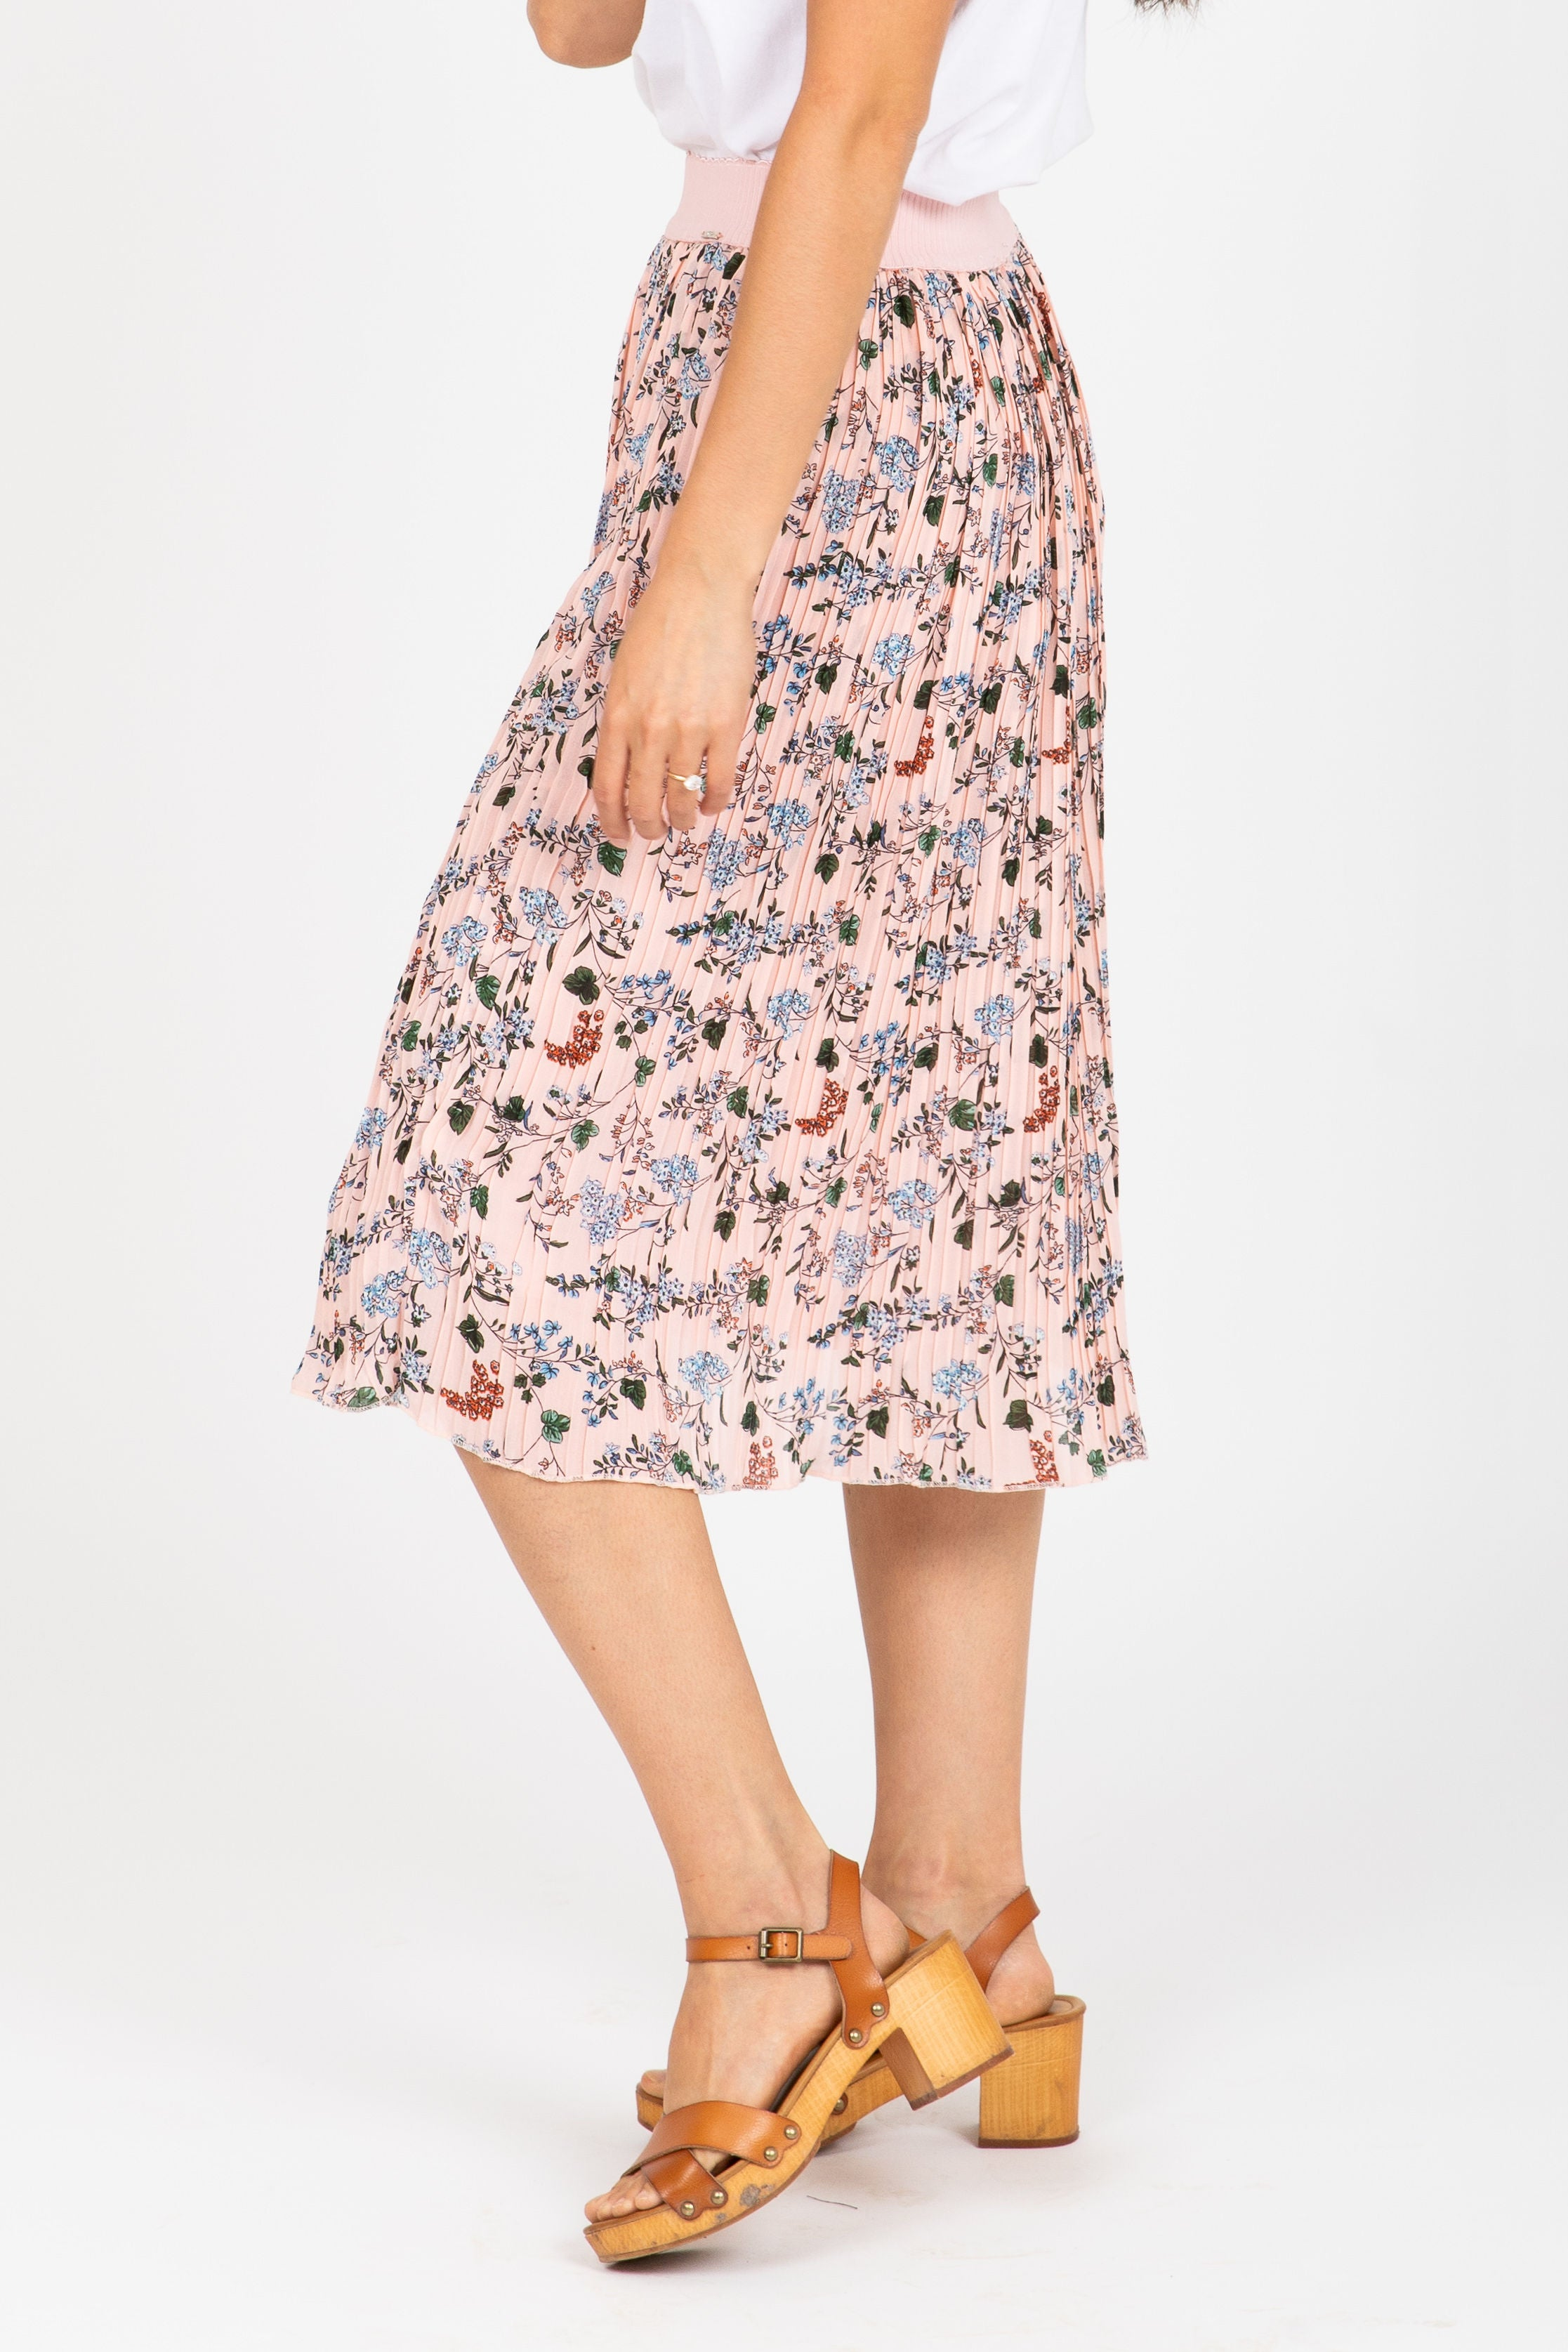 The Impact Pleated Floral Skirt in Blush